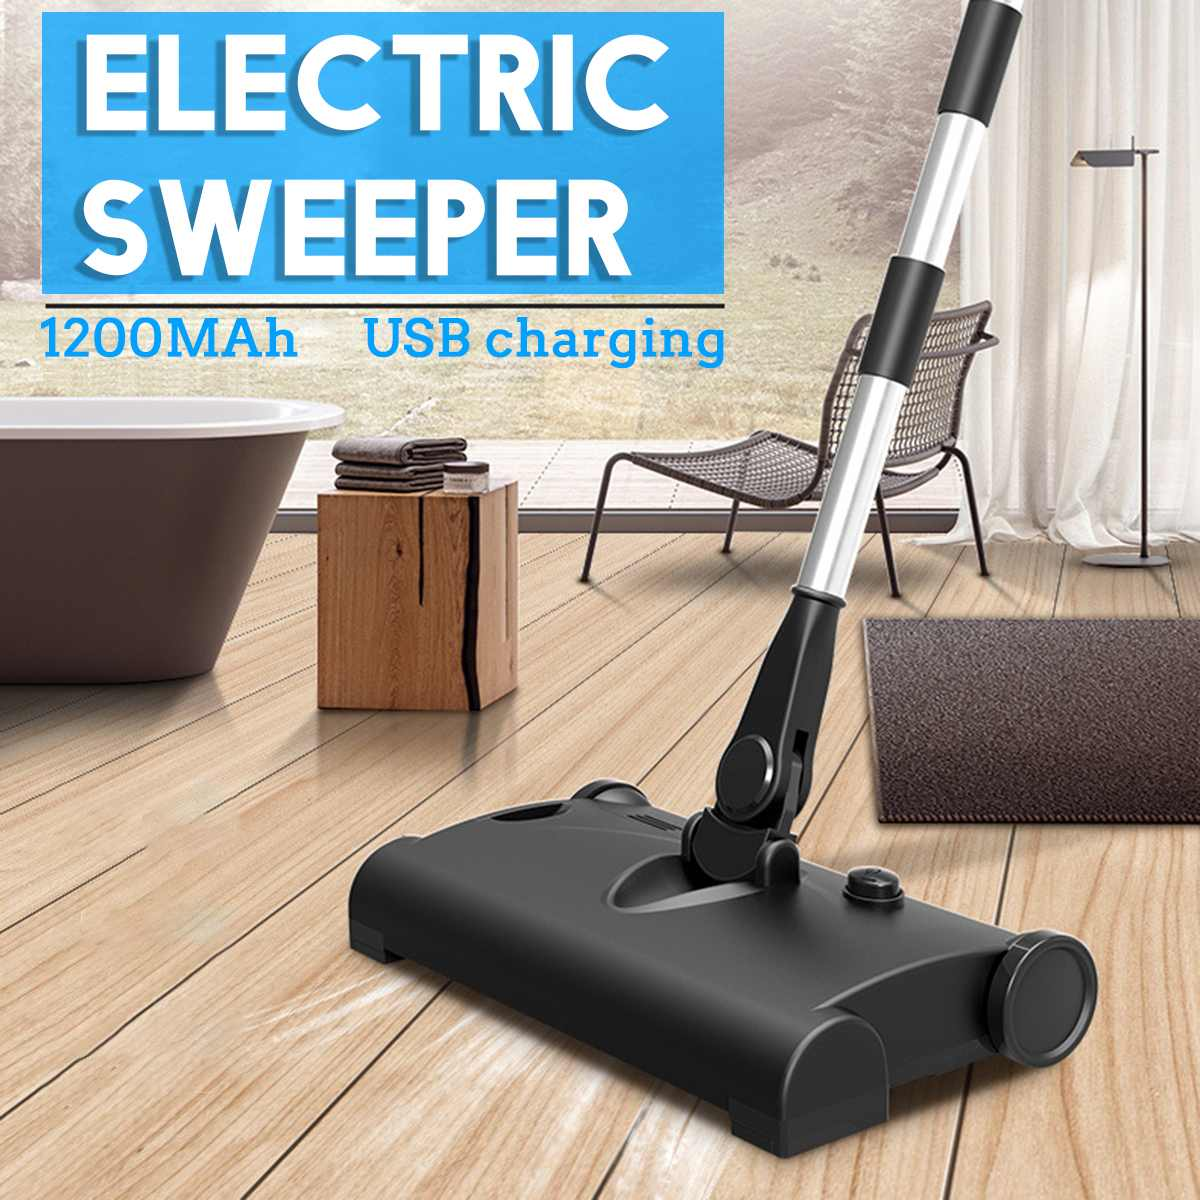 Electric Mop Wireless USB Charging Floor-Cleaner Scrubber Brooms 360 Degree Rotation Hand Push Sweeper Household Cleaning Mops